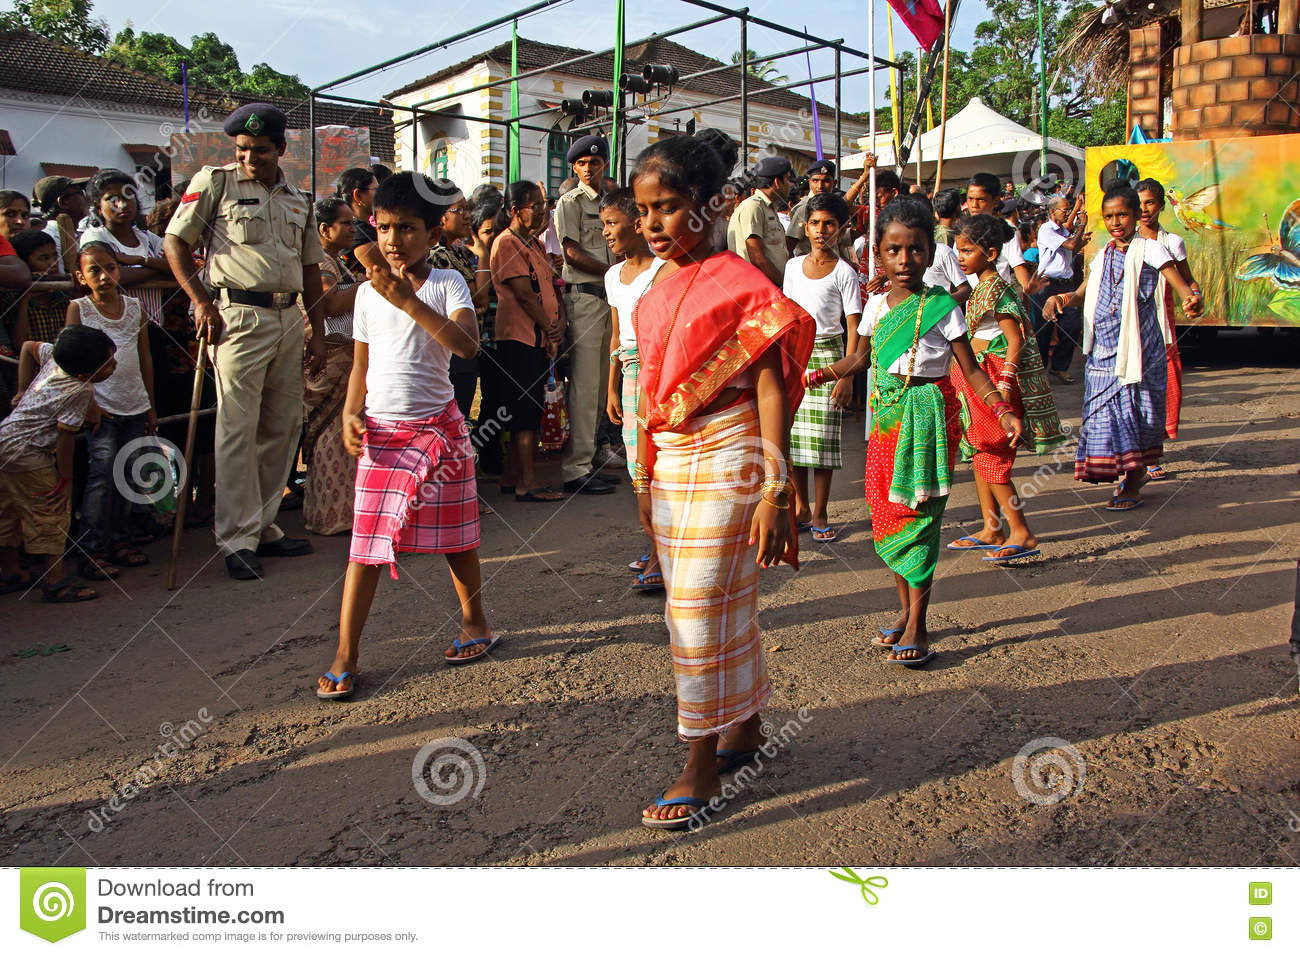 Flag Festival India: Bonderam 2016 Festival In Goa, India 1 Editorial Stock